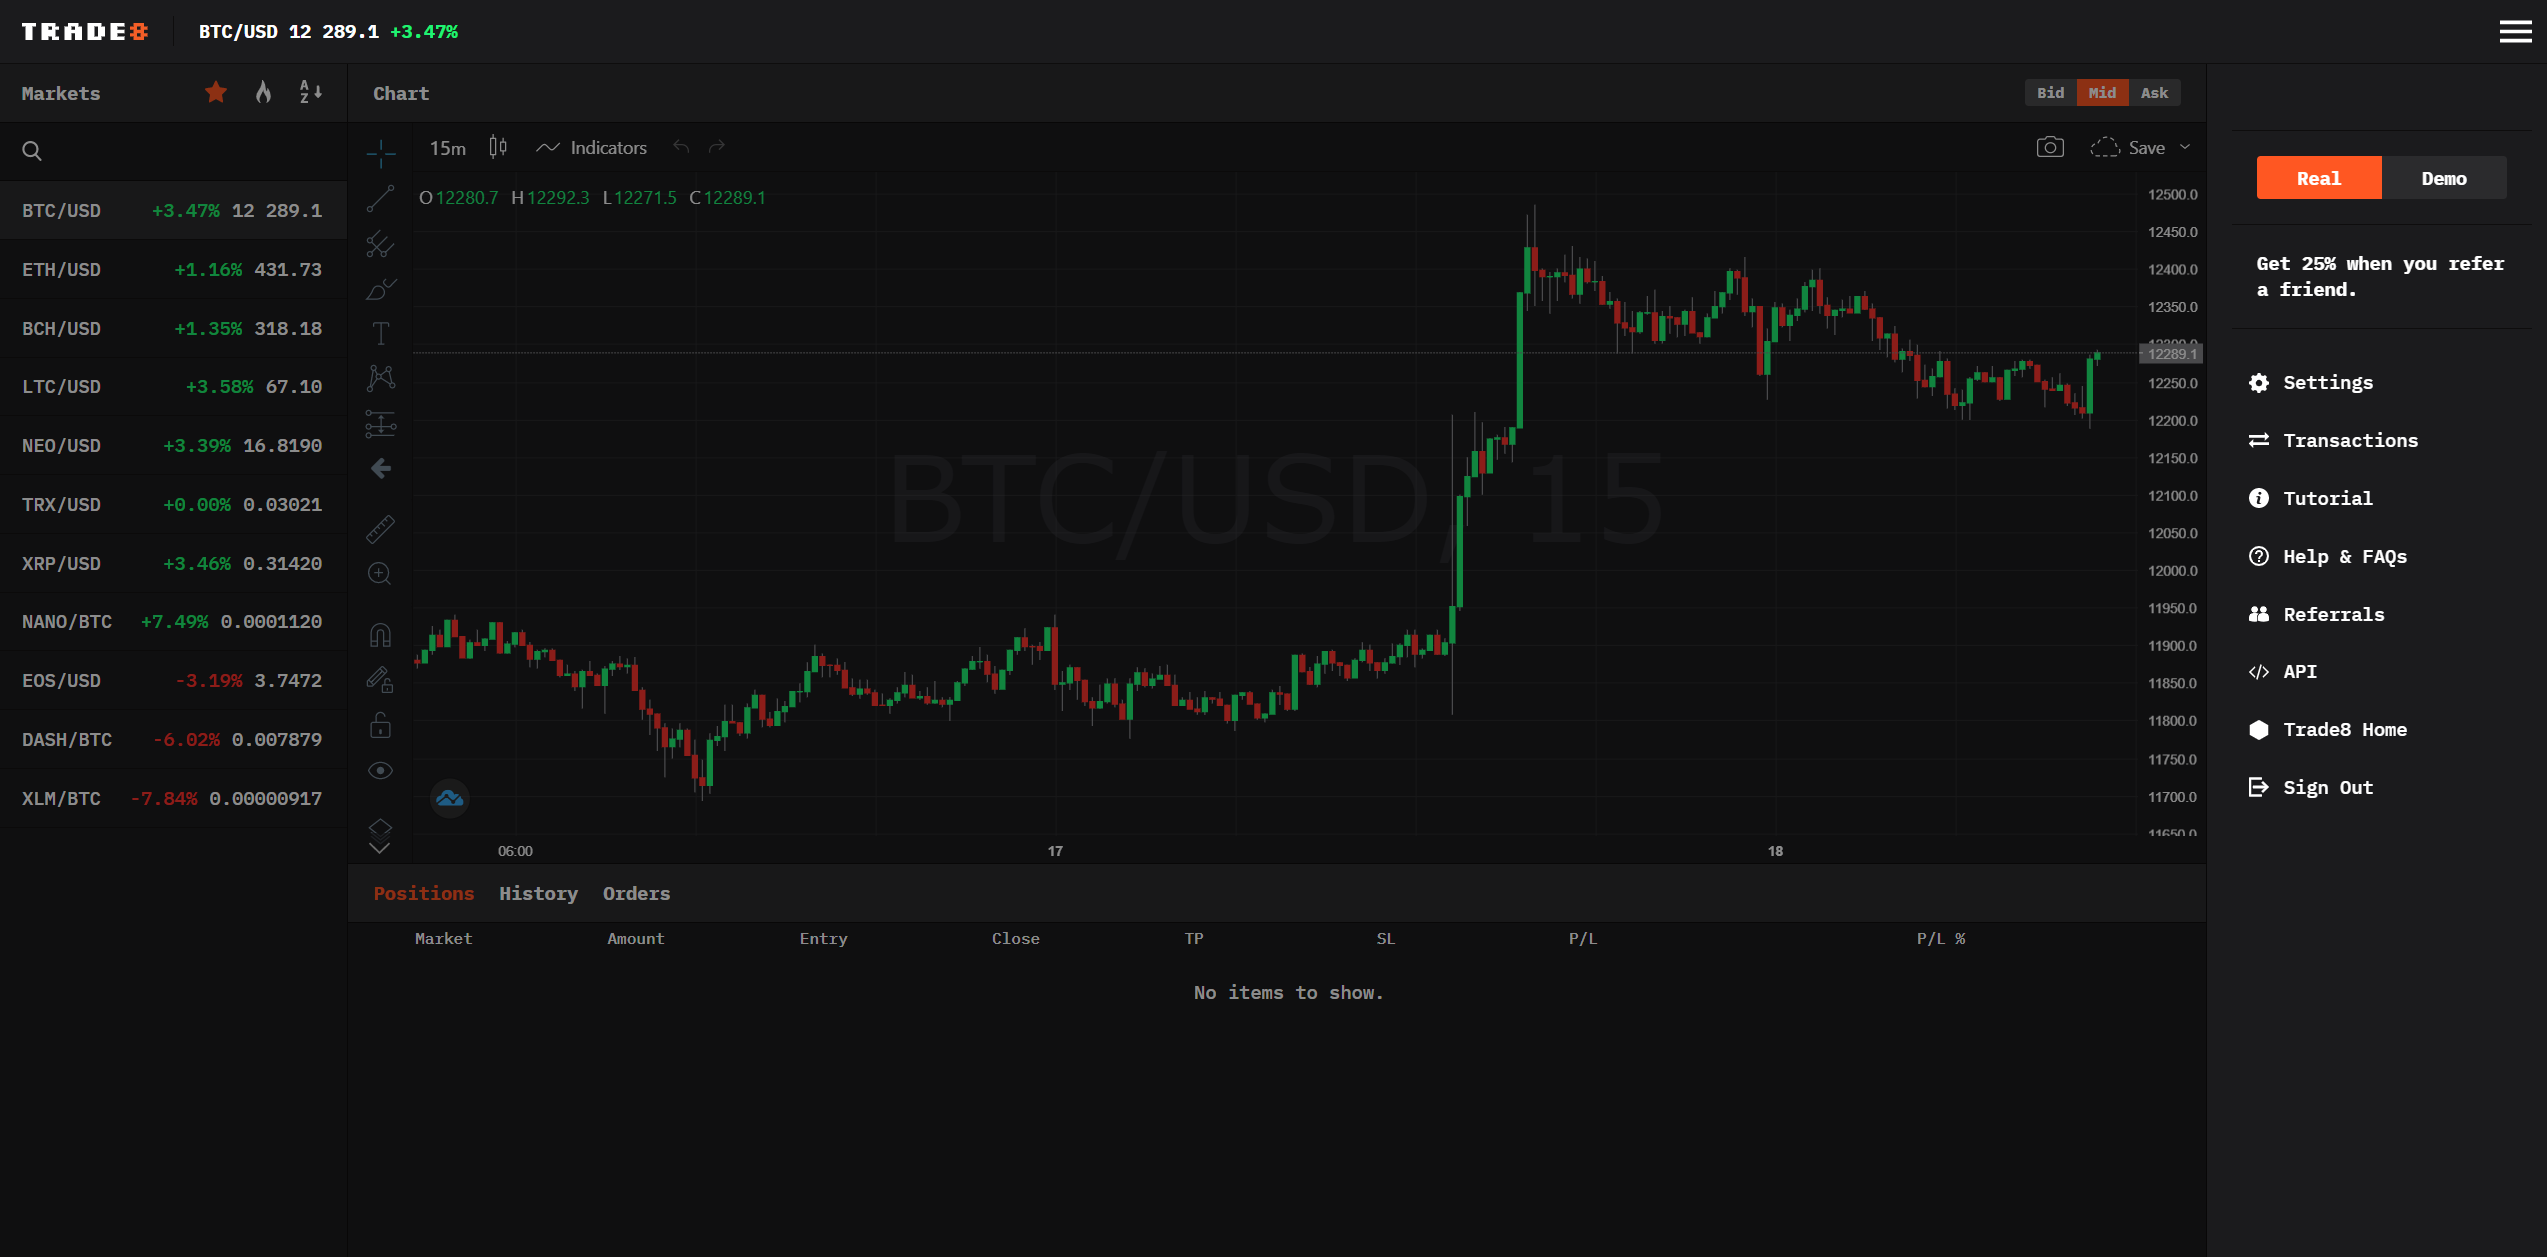 Trade8 Trading View